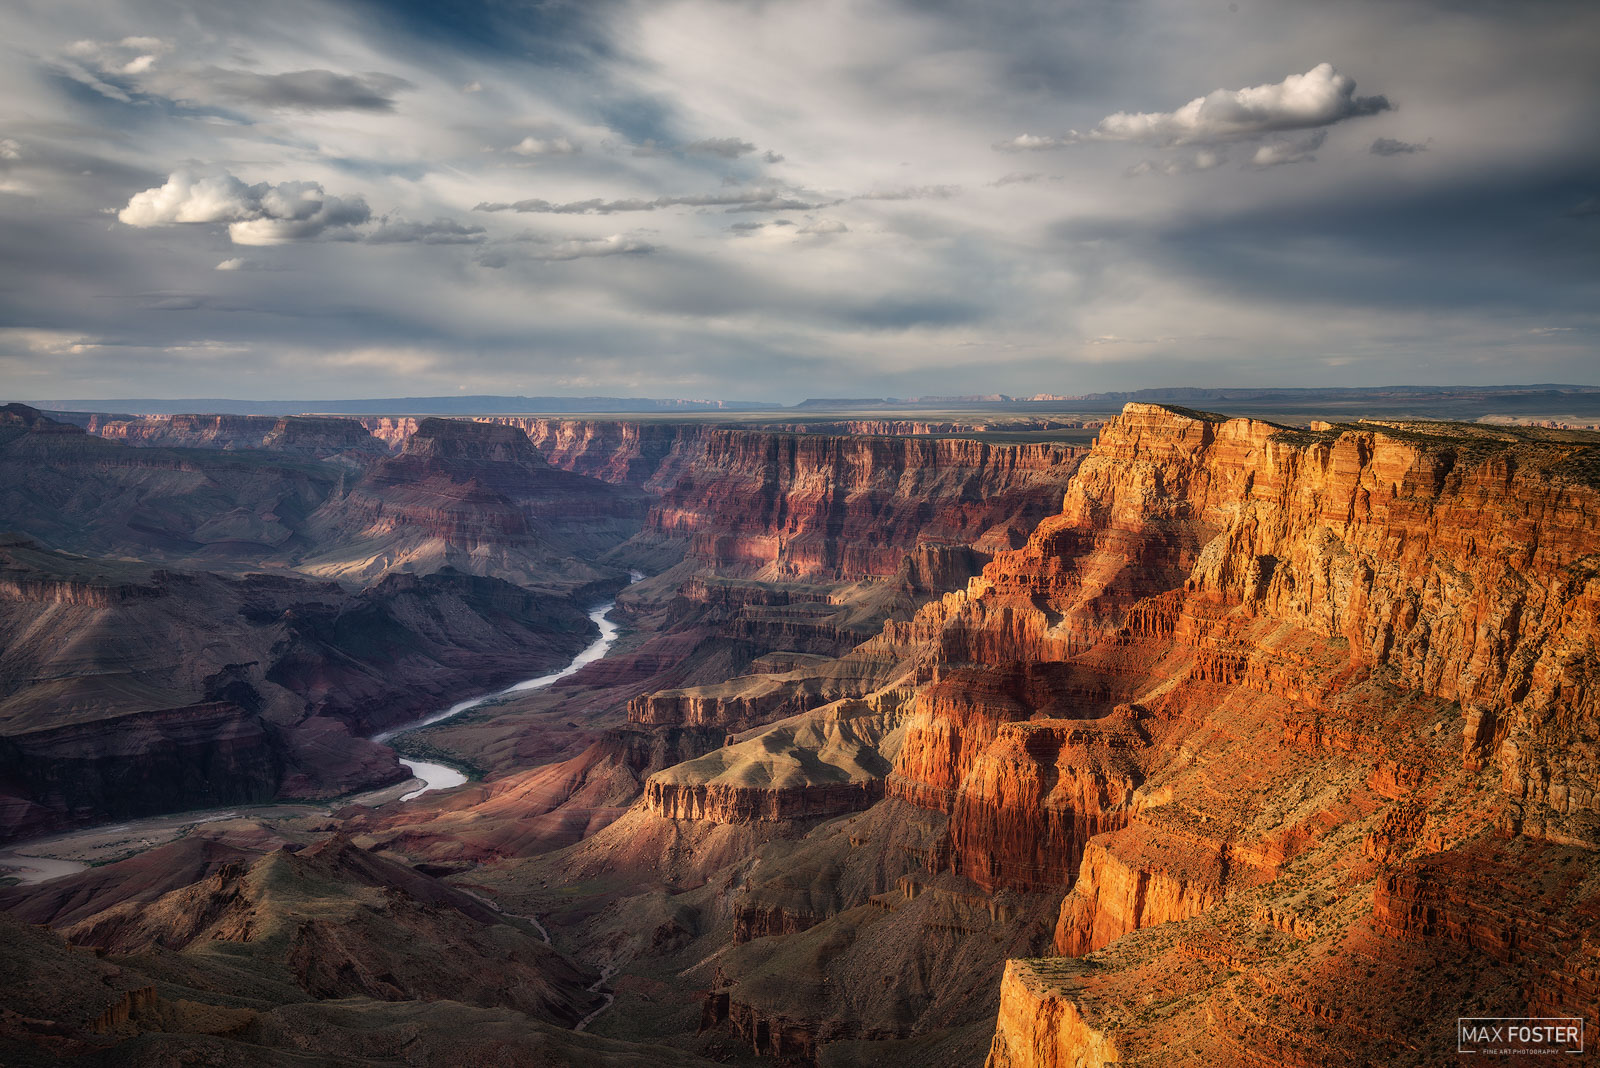 Grand Canyon National Park, Arizona, Time and Chance, photo